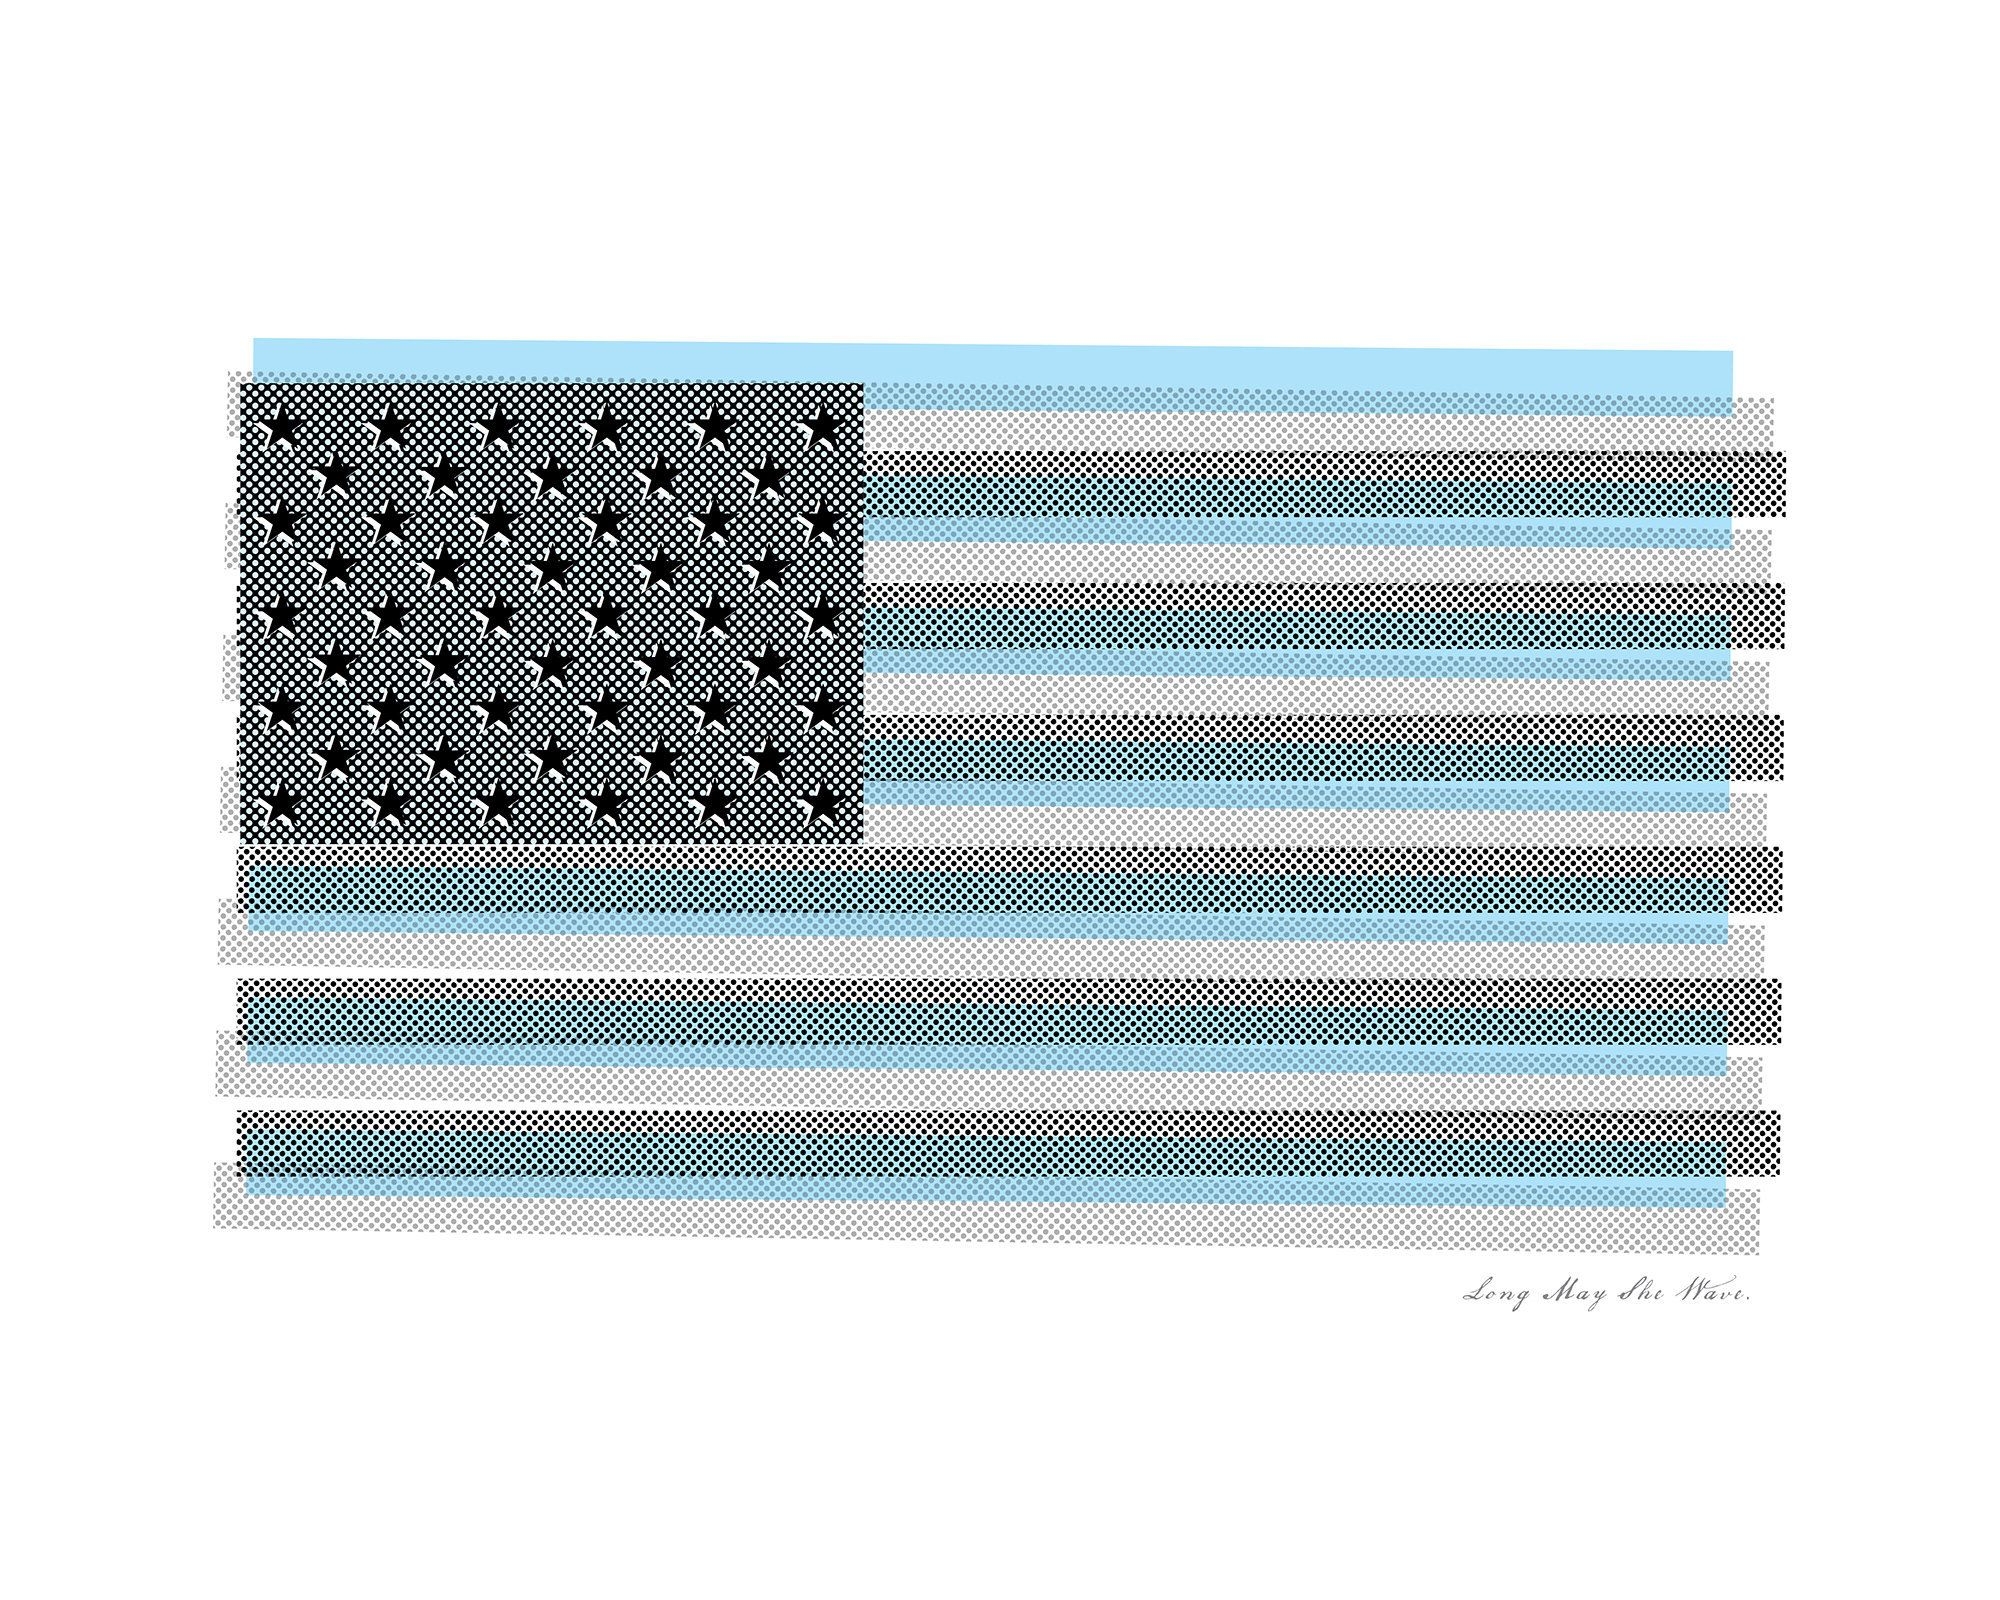 American Flag Art, Modern Flag Print, Long May She Wave, Retro Patriotic Wall Art, Flag Pop Art #americanflagart